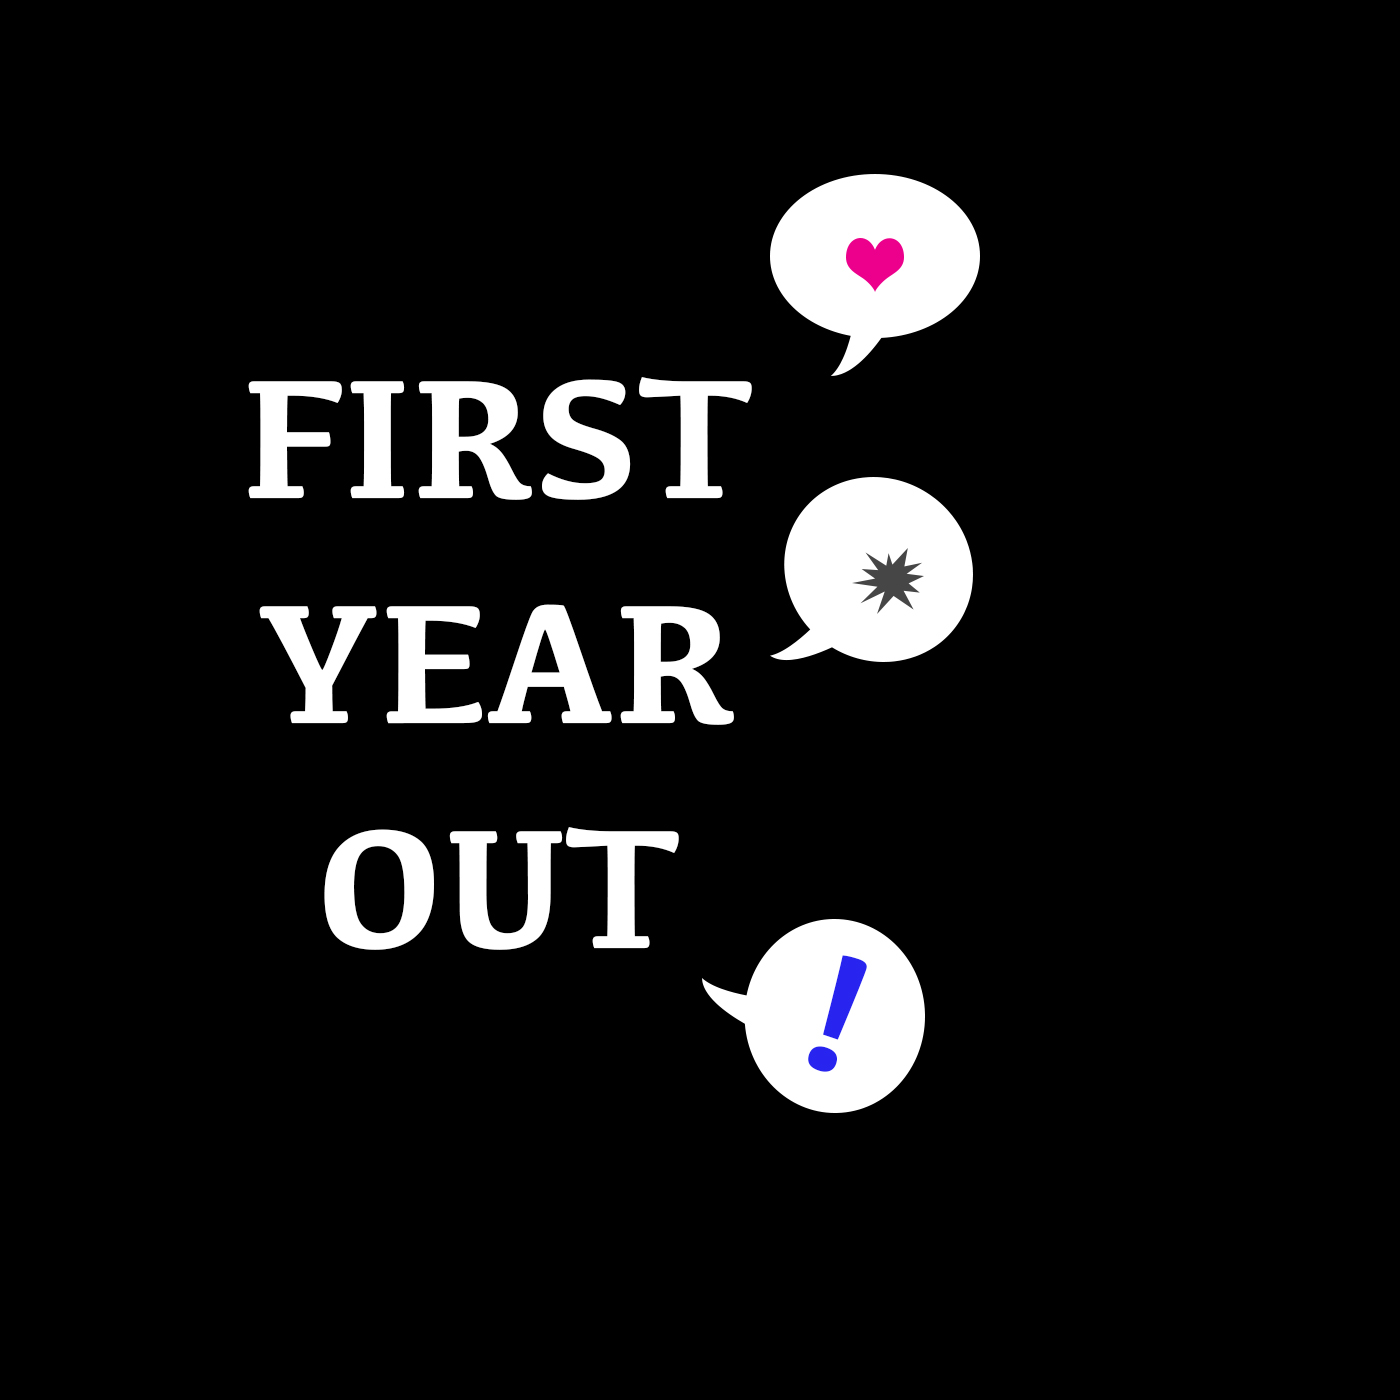 First Year Out